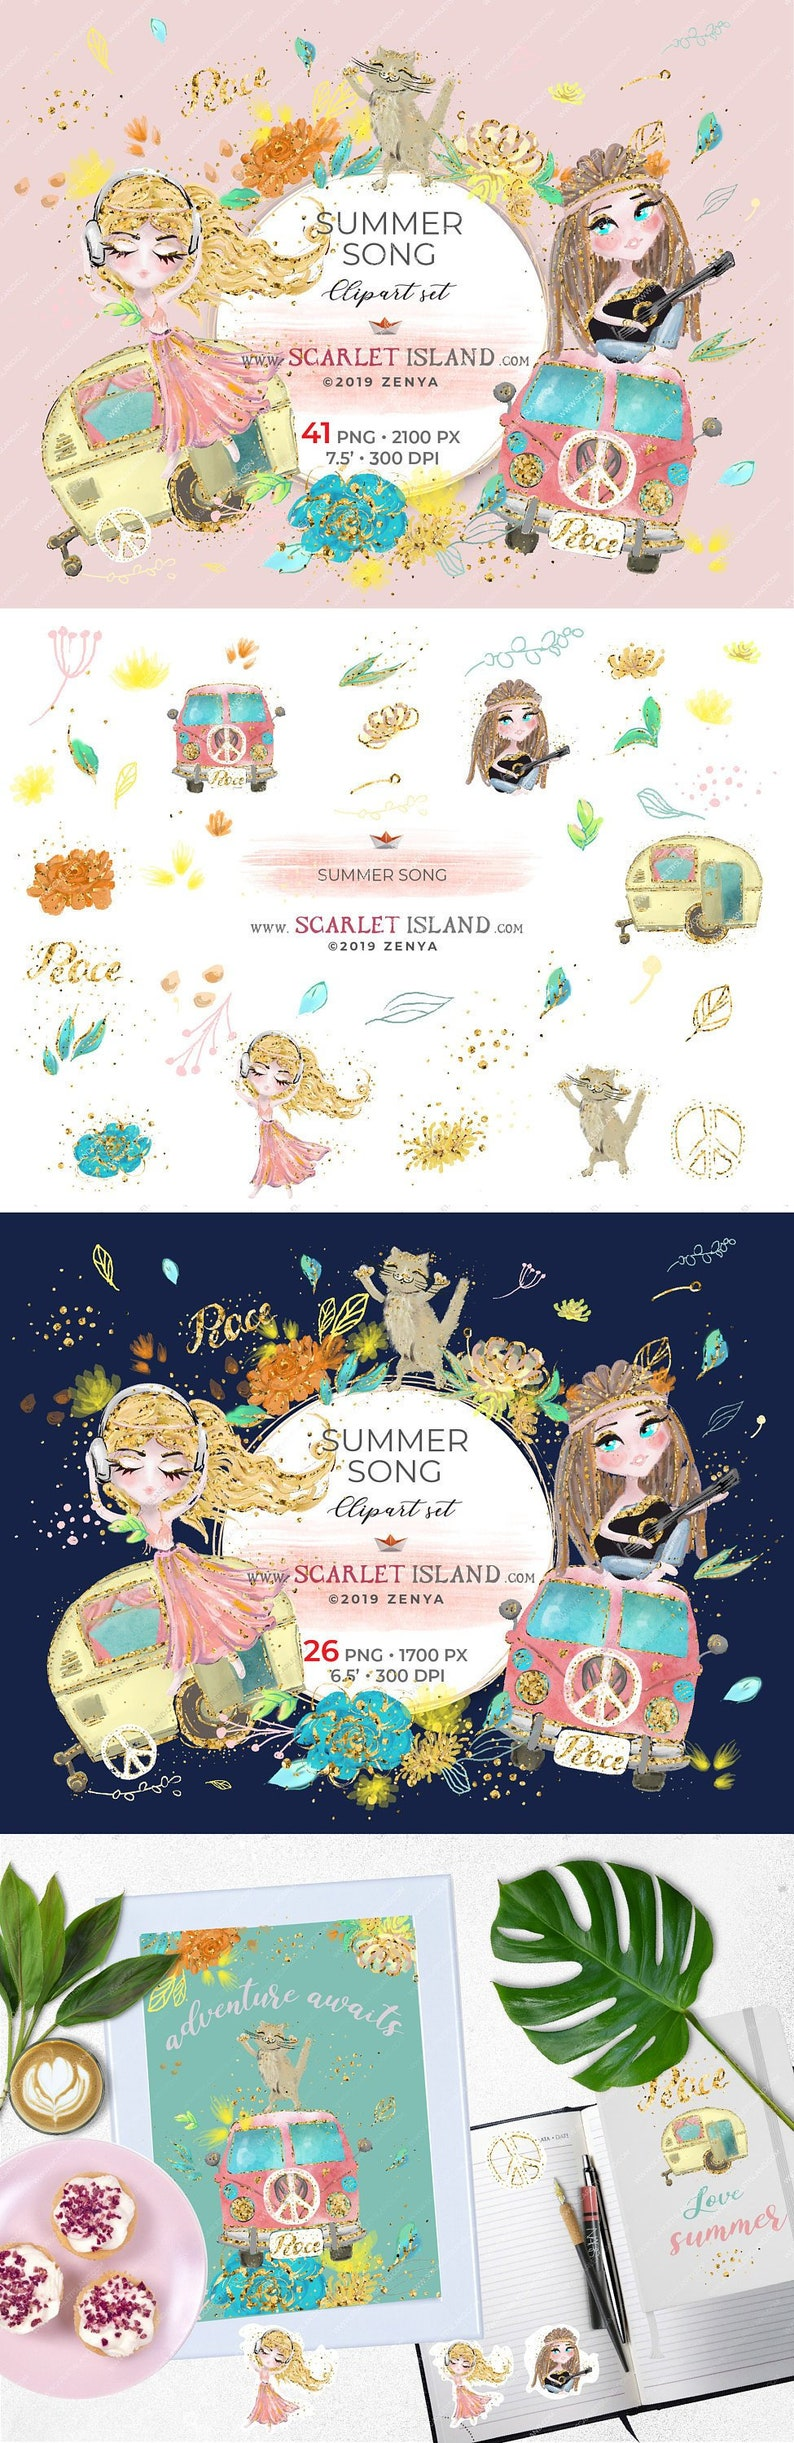 Summer song clipart set hand drawn hippie chic graphics boho image 0